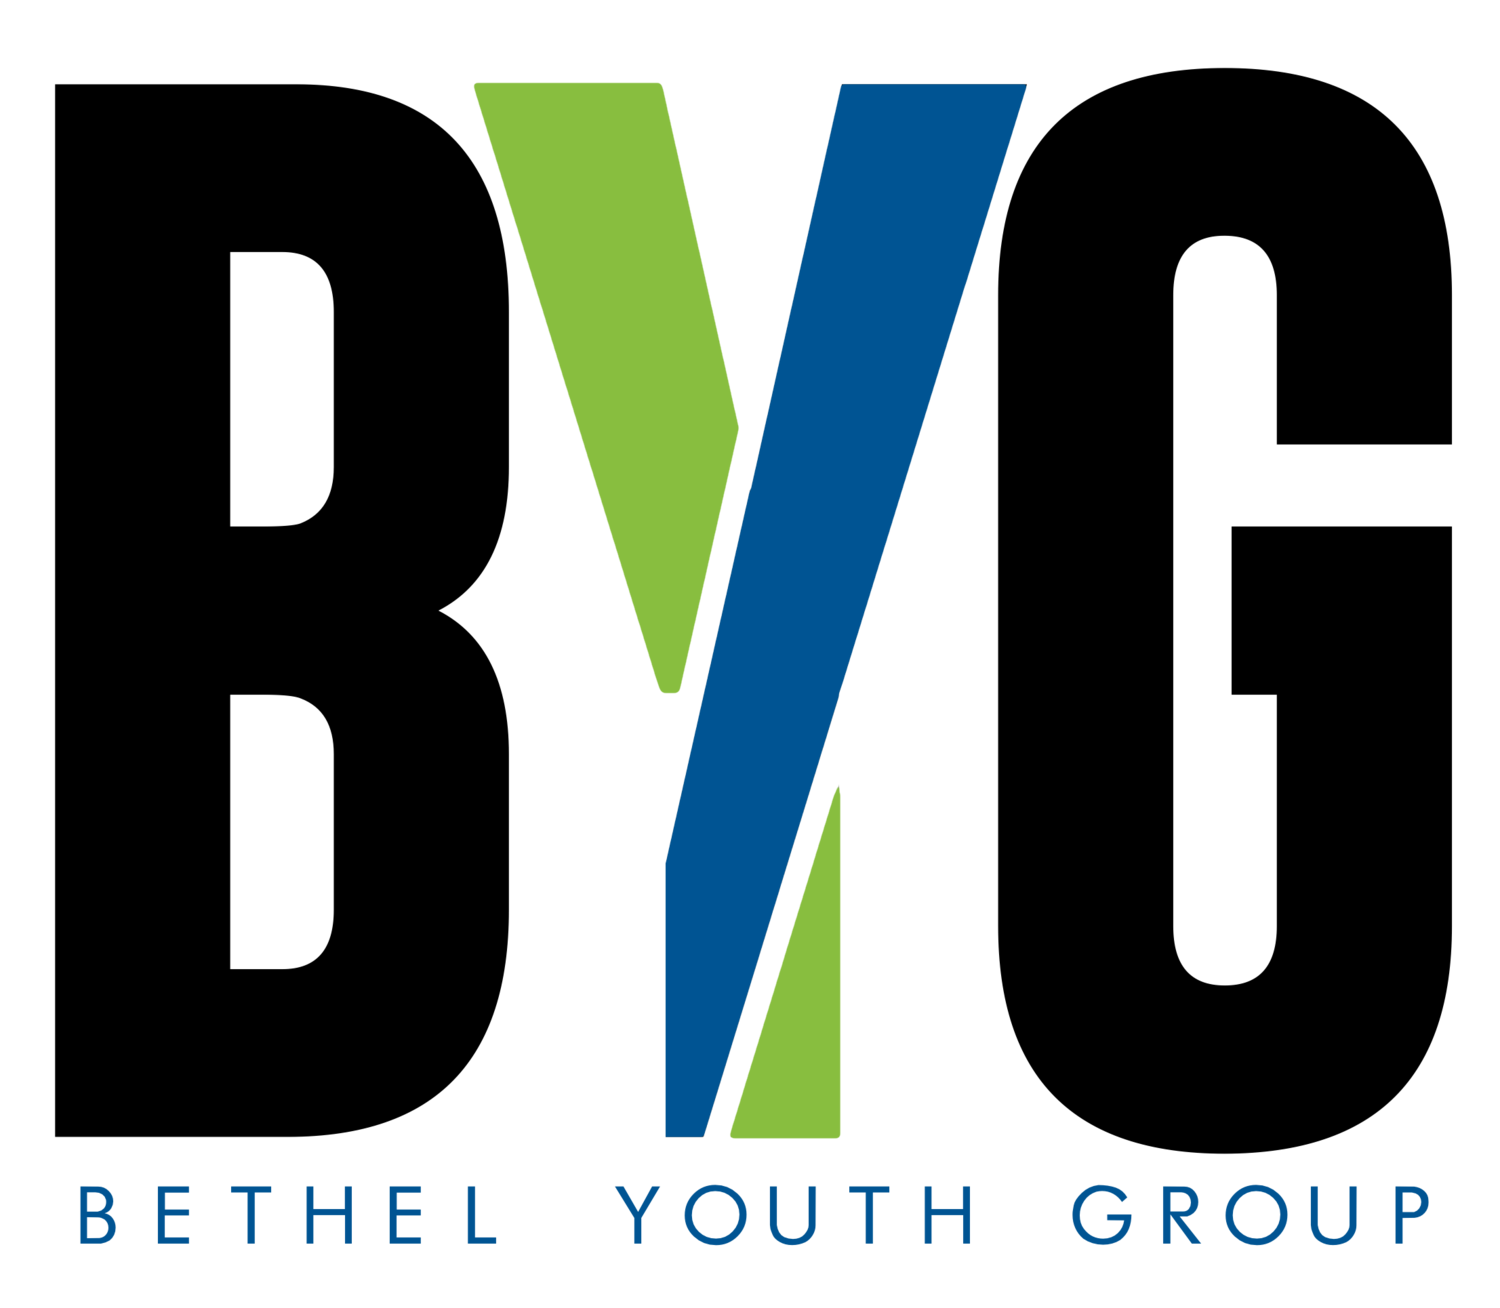 bethel youth group